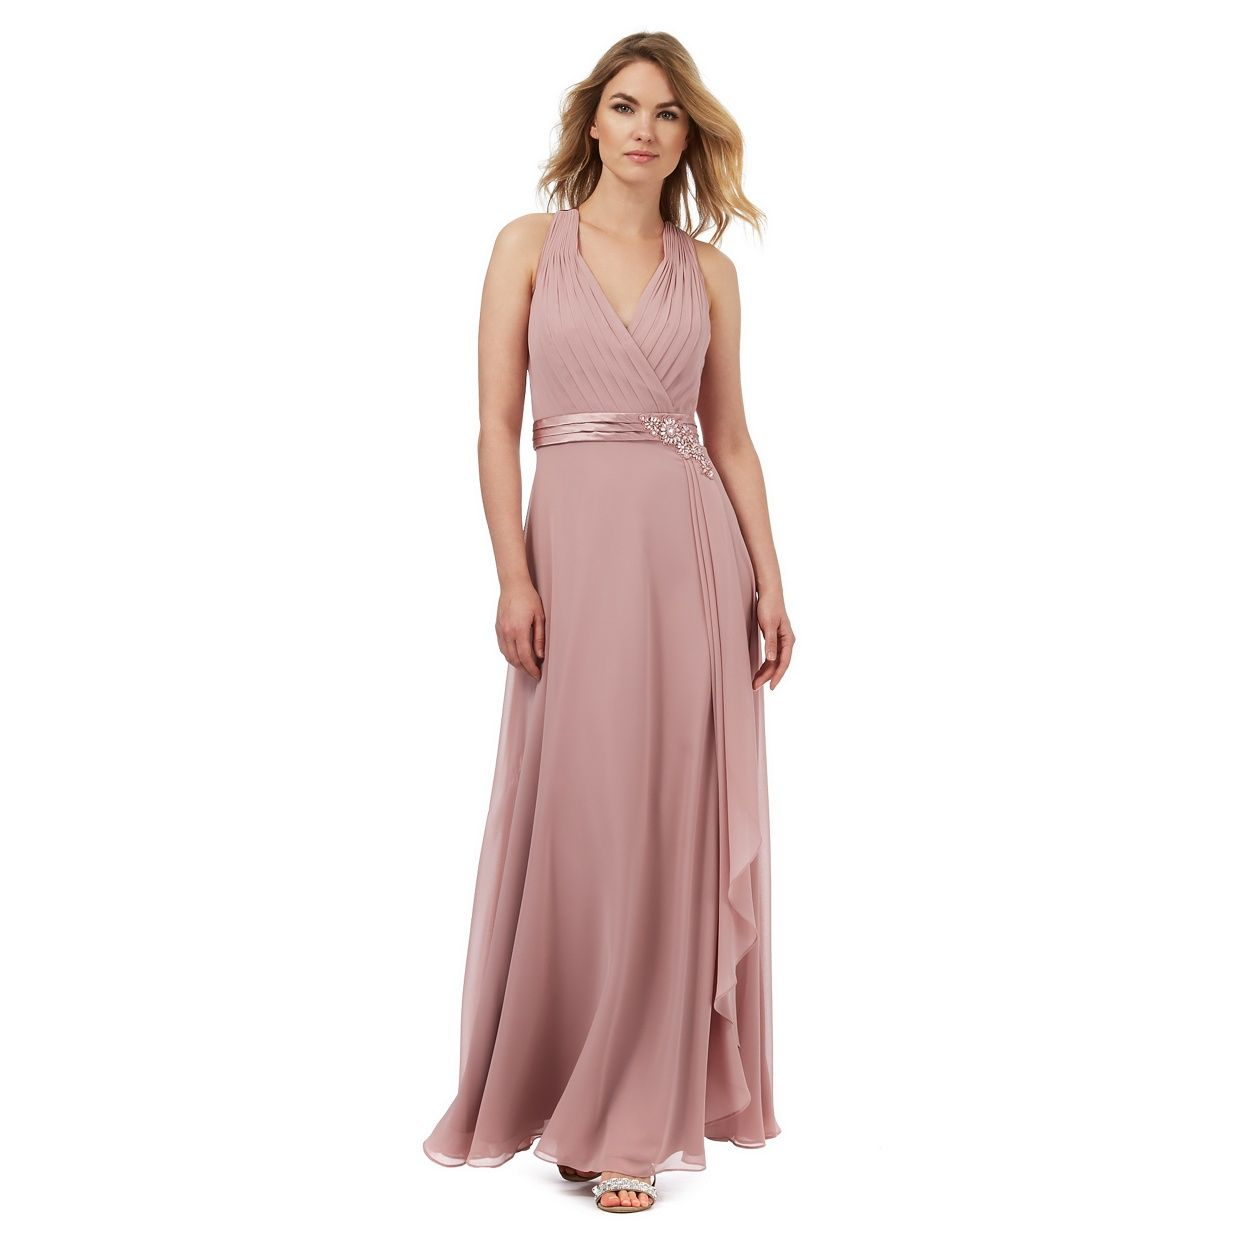 From our exclusive No. 1 by Jenny Packham range, this dress cascades ...